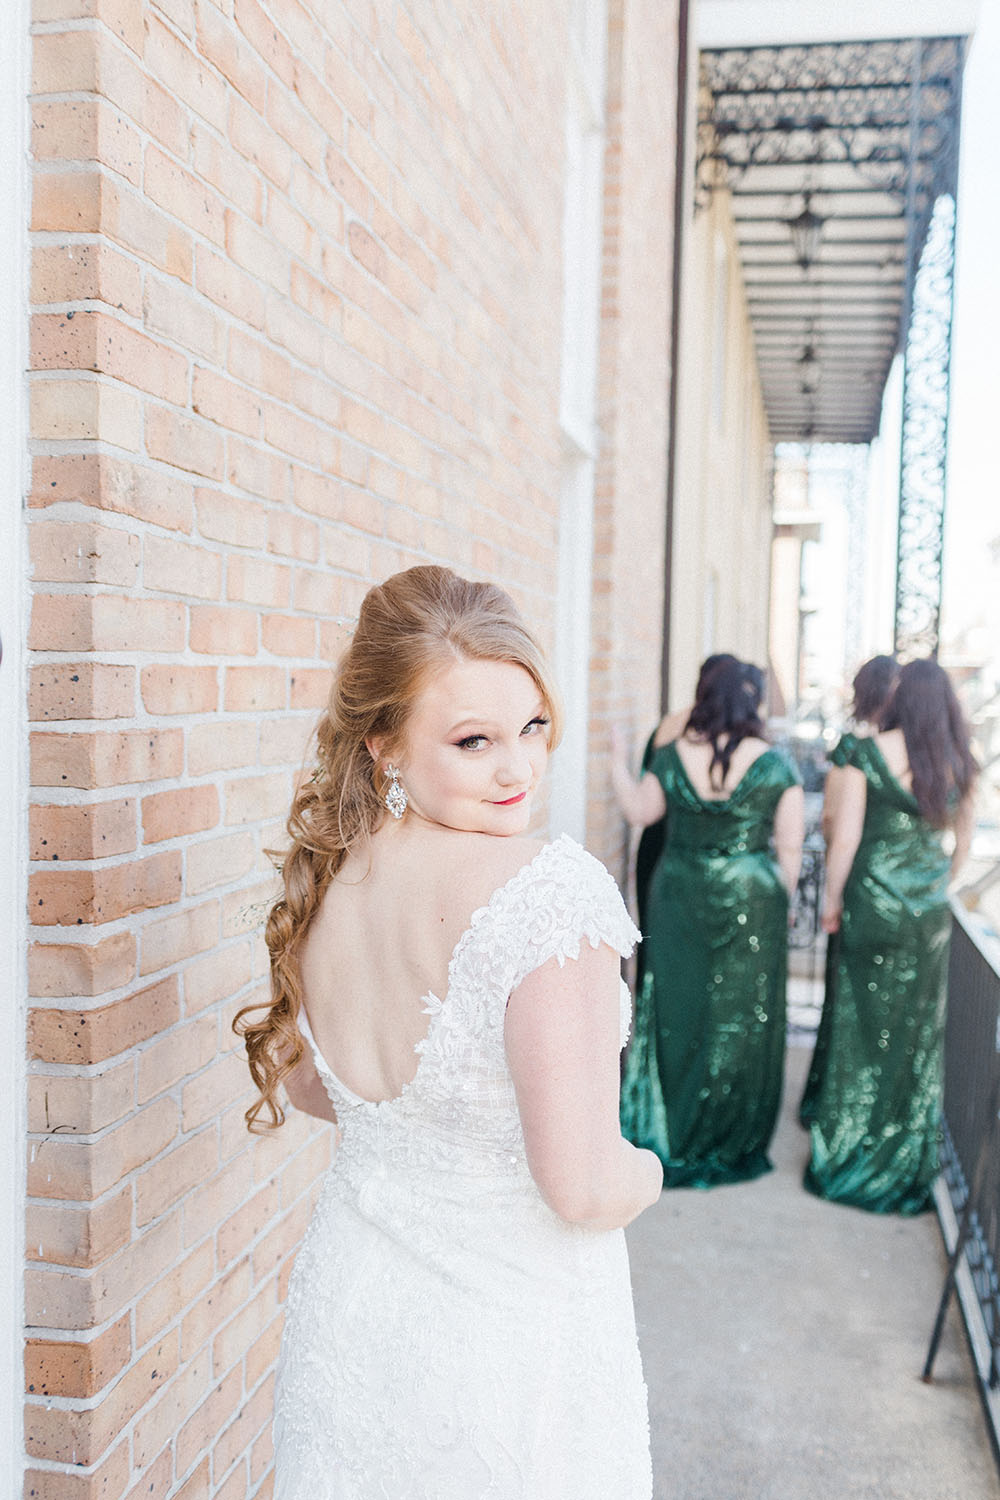 outdoor wedding day photos bride in foreground and bridesmaids in background